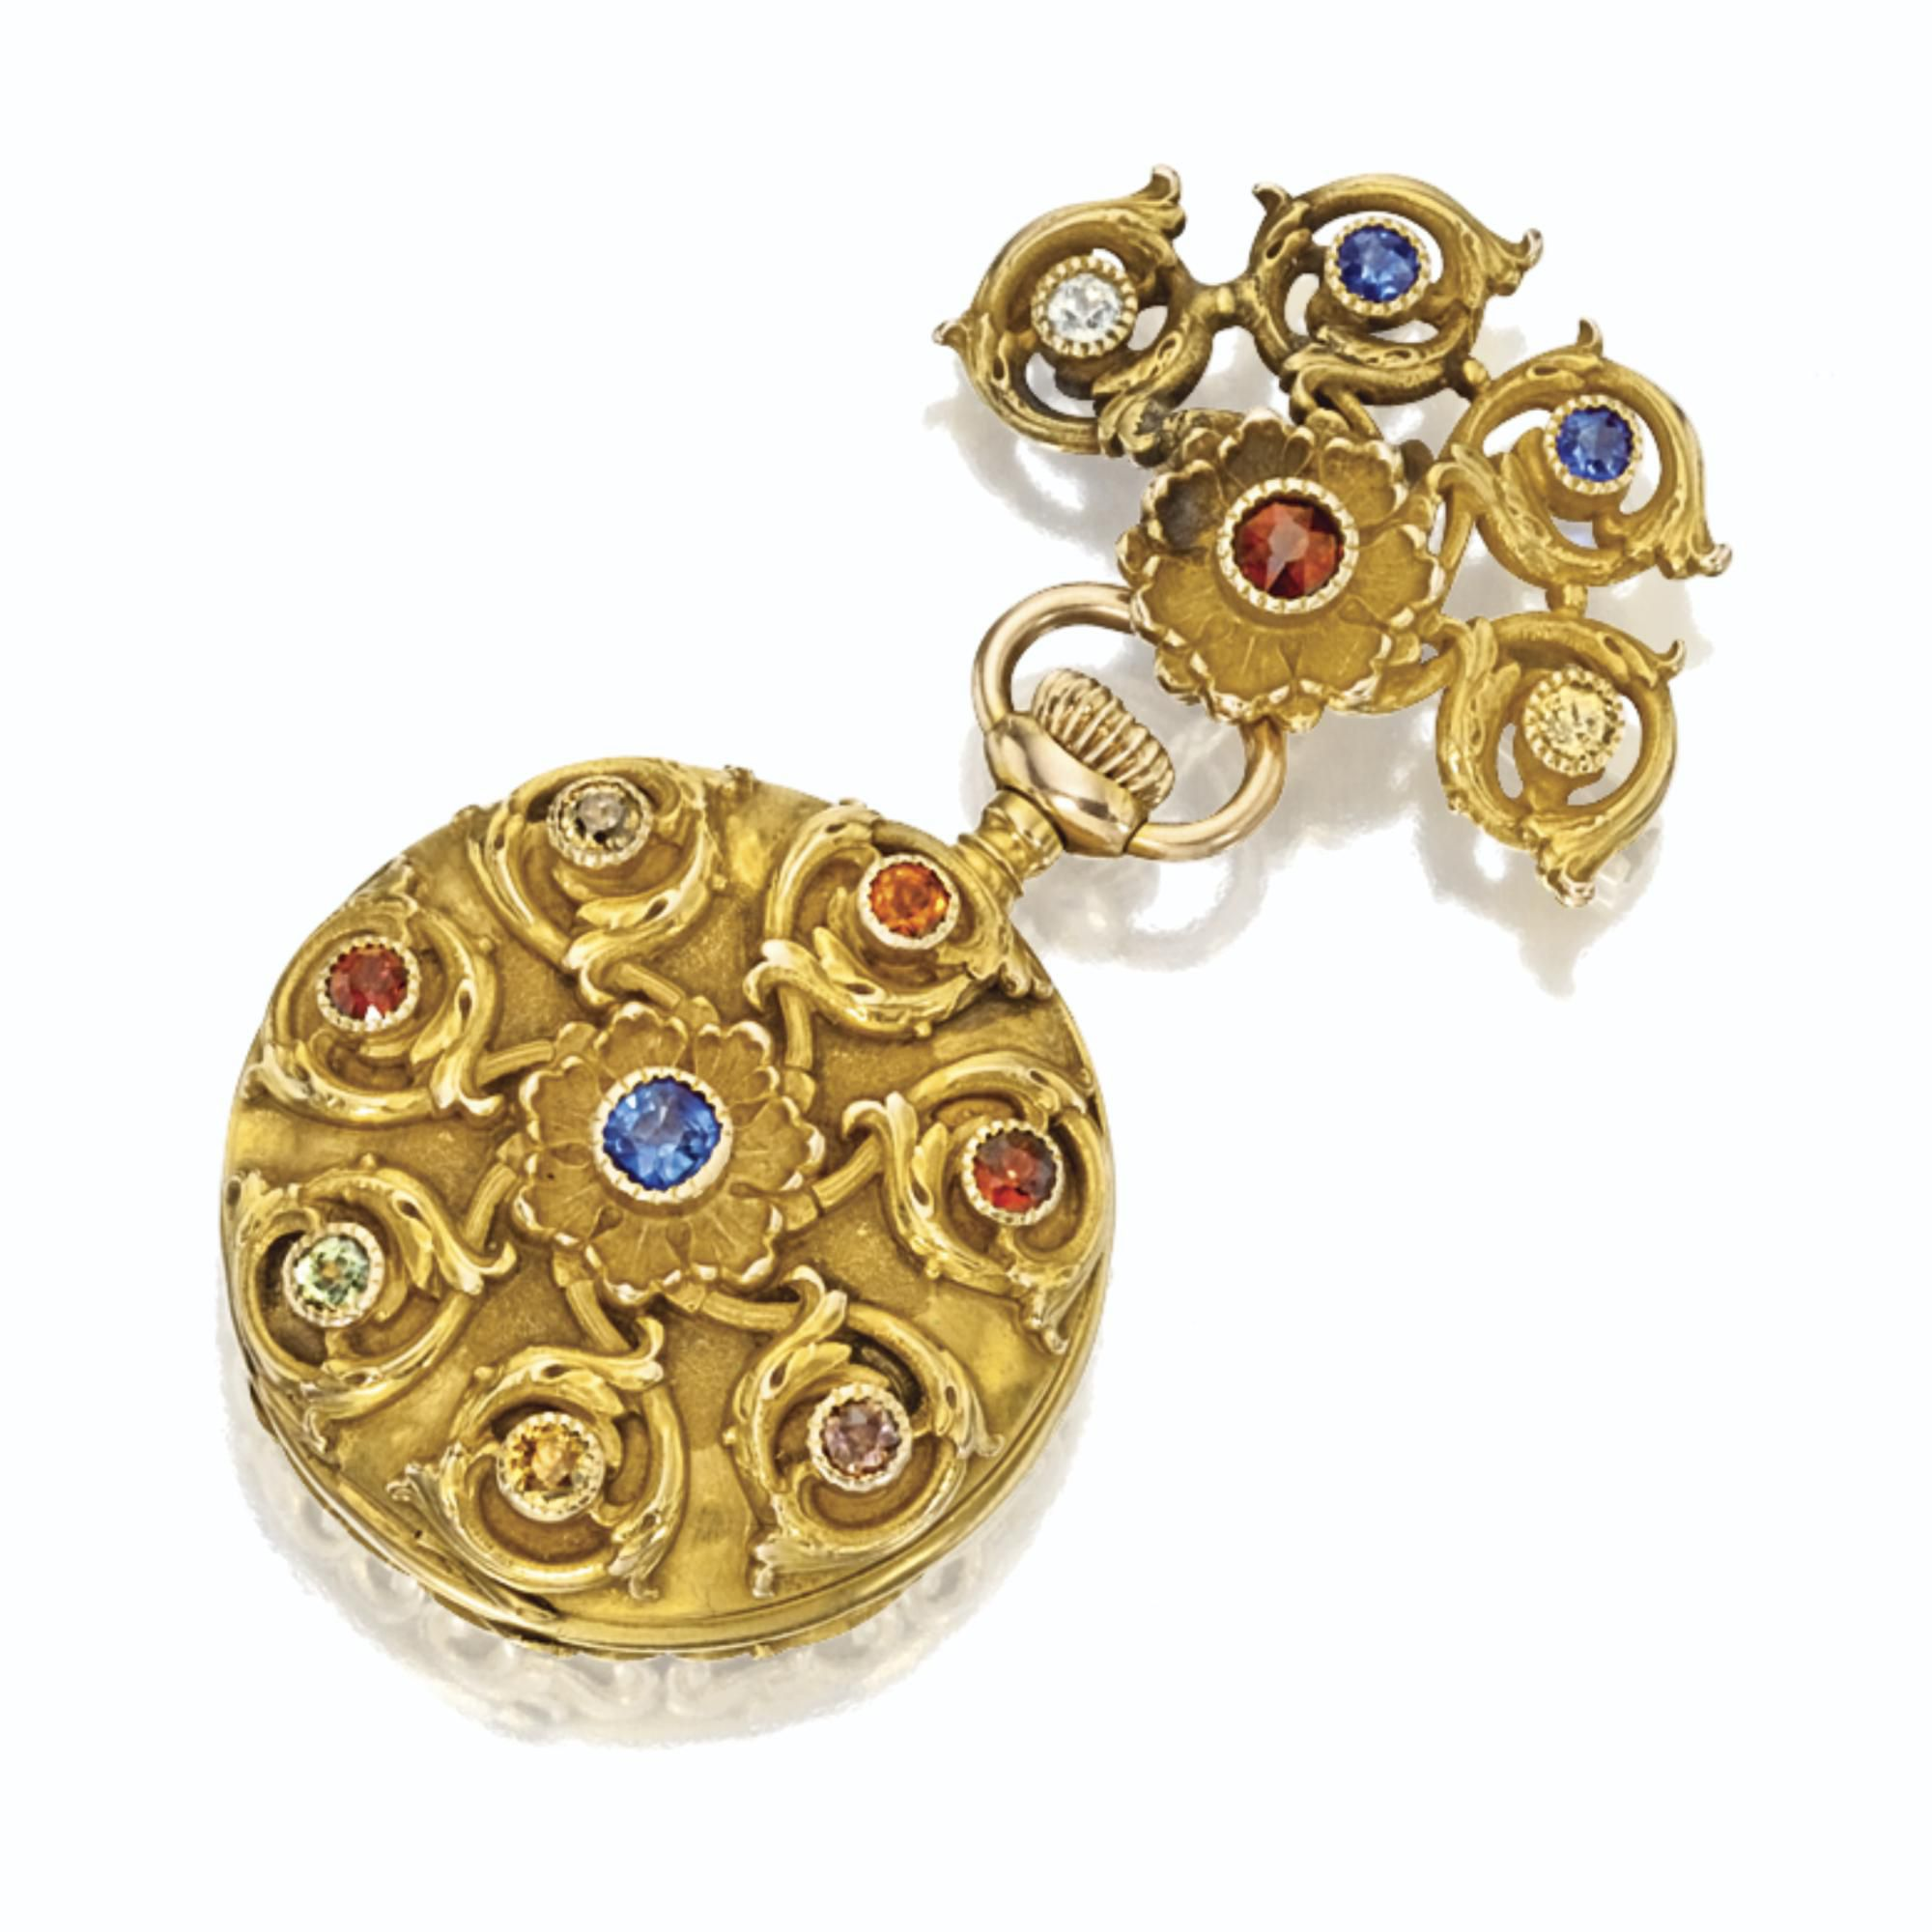 Gold and colored stone pendantwatch tb starr circa lot